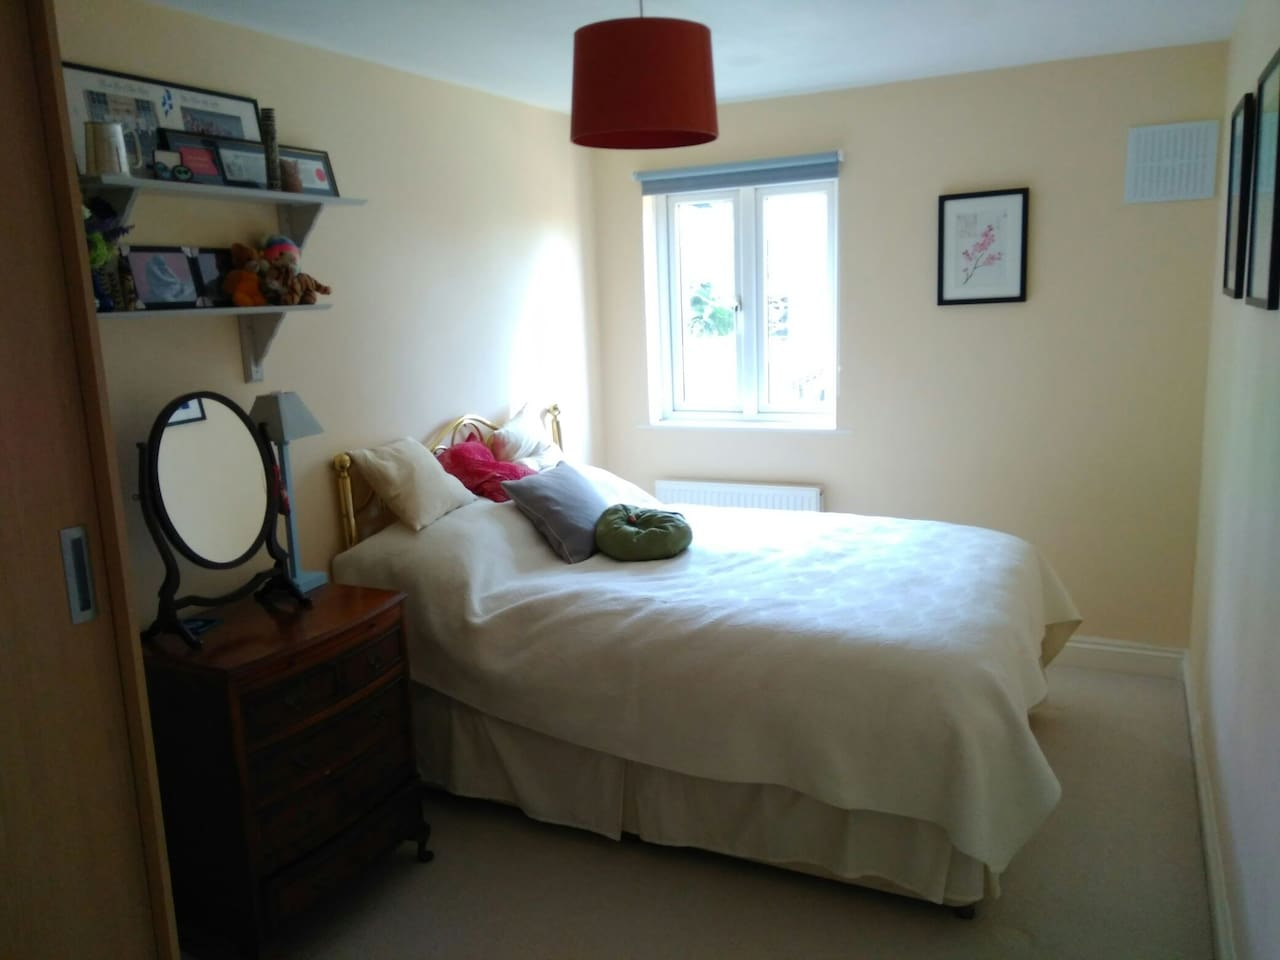 Super-comfortable double bed in a really bright, spacious (110sqft) bedroom!